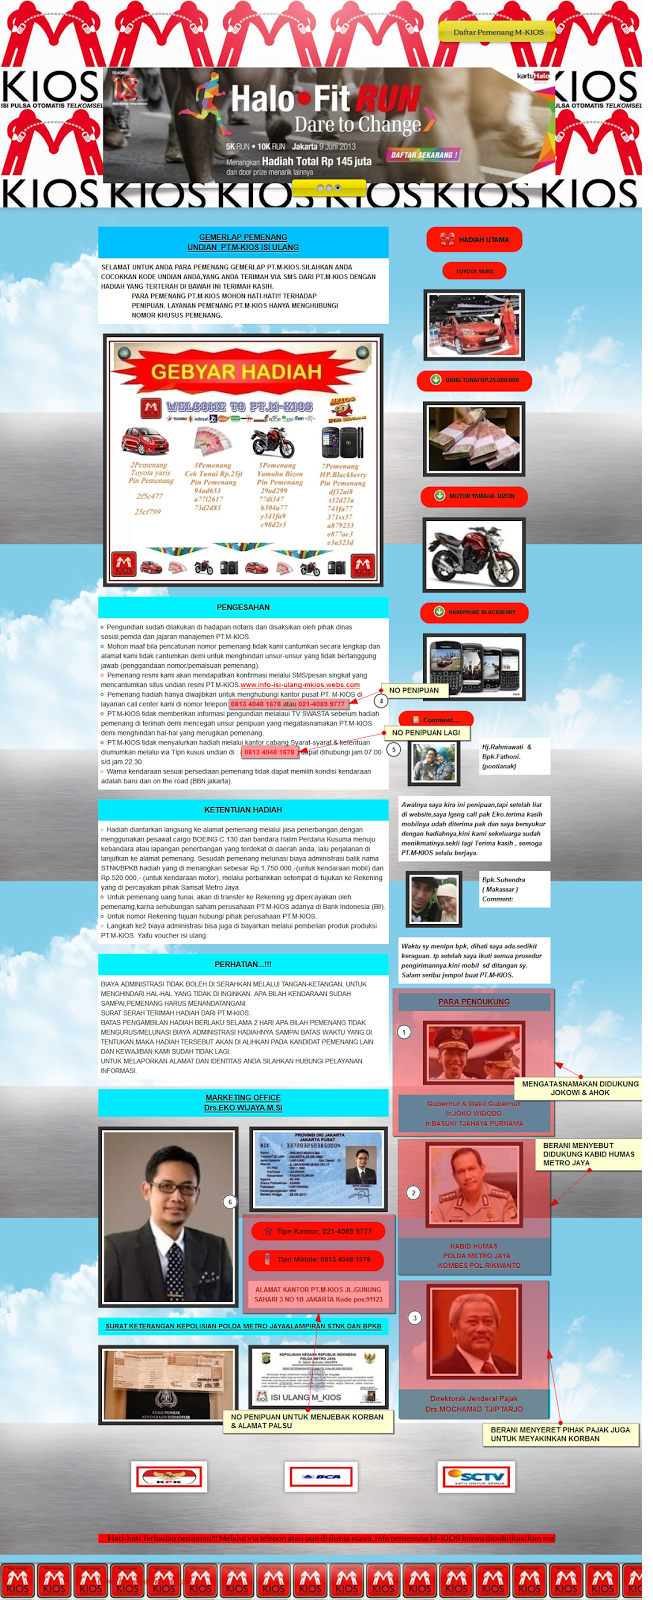 info-isi-ulang-mkios.webs.com 100% PENIPUAN / SCAM